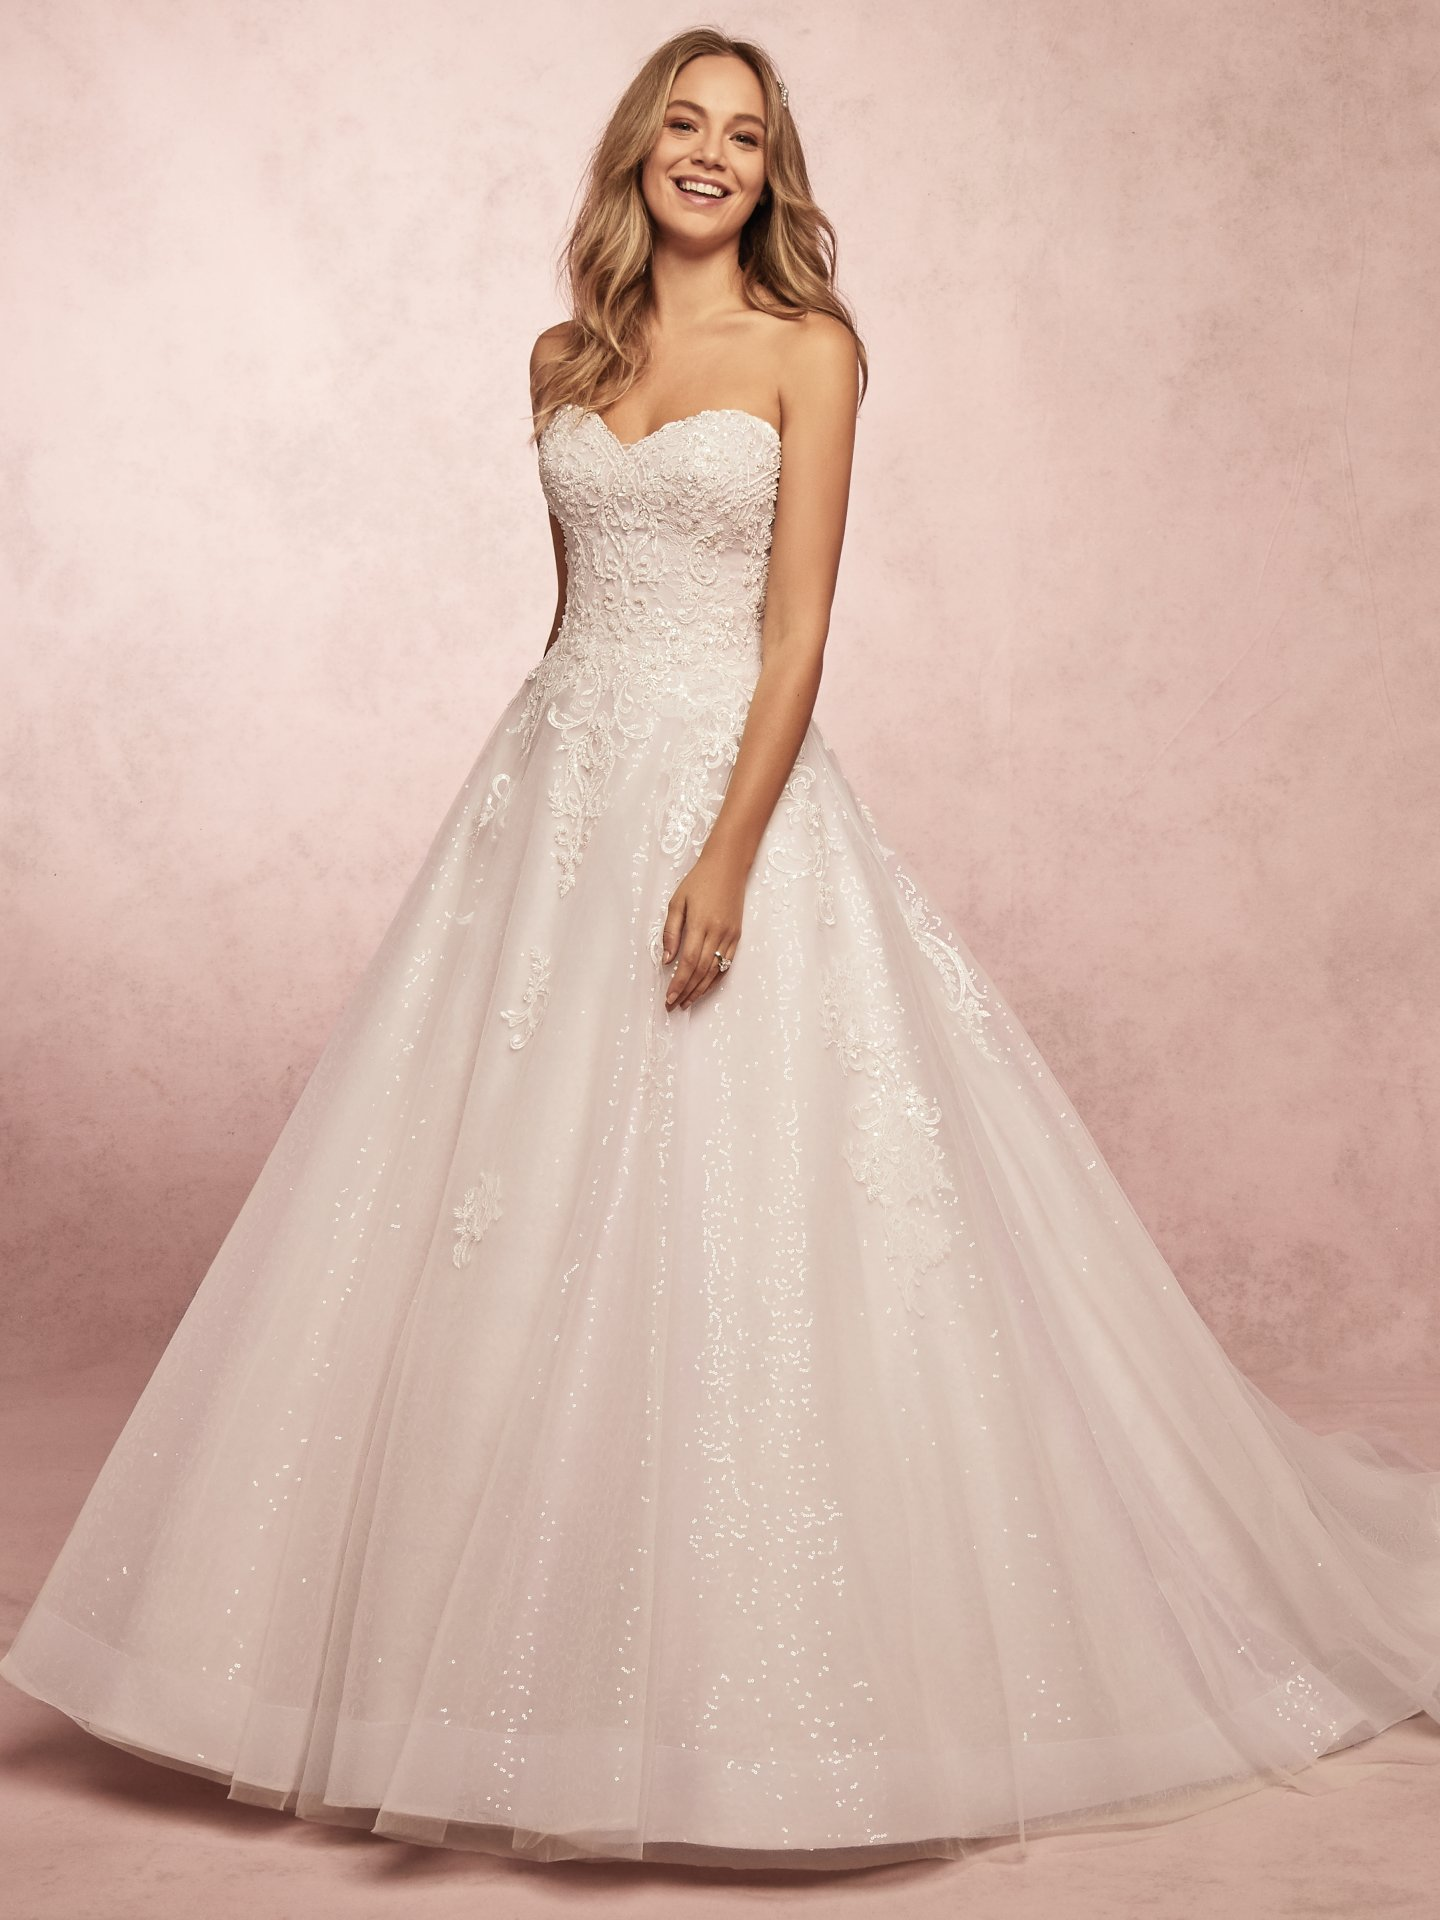 2020 Maggie Sottero/ R.I.: HONOR, Antique Iv: 38-40